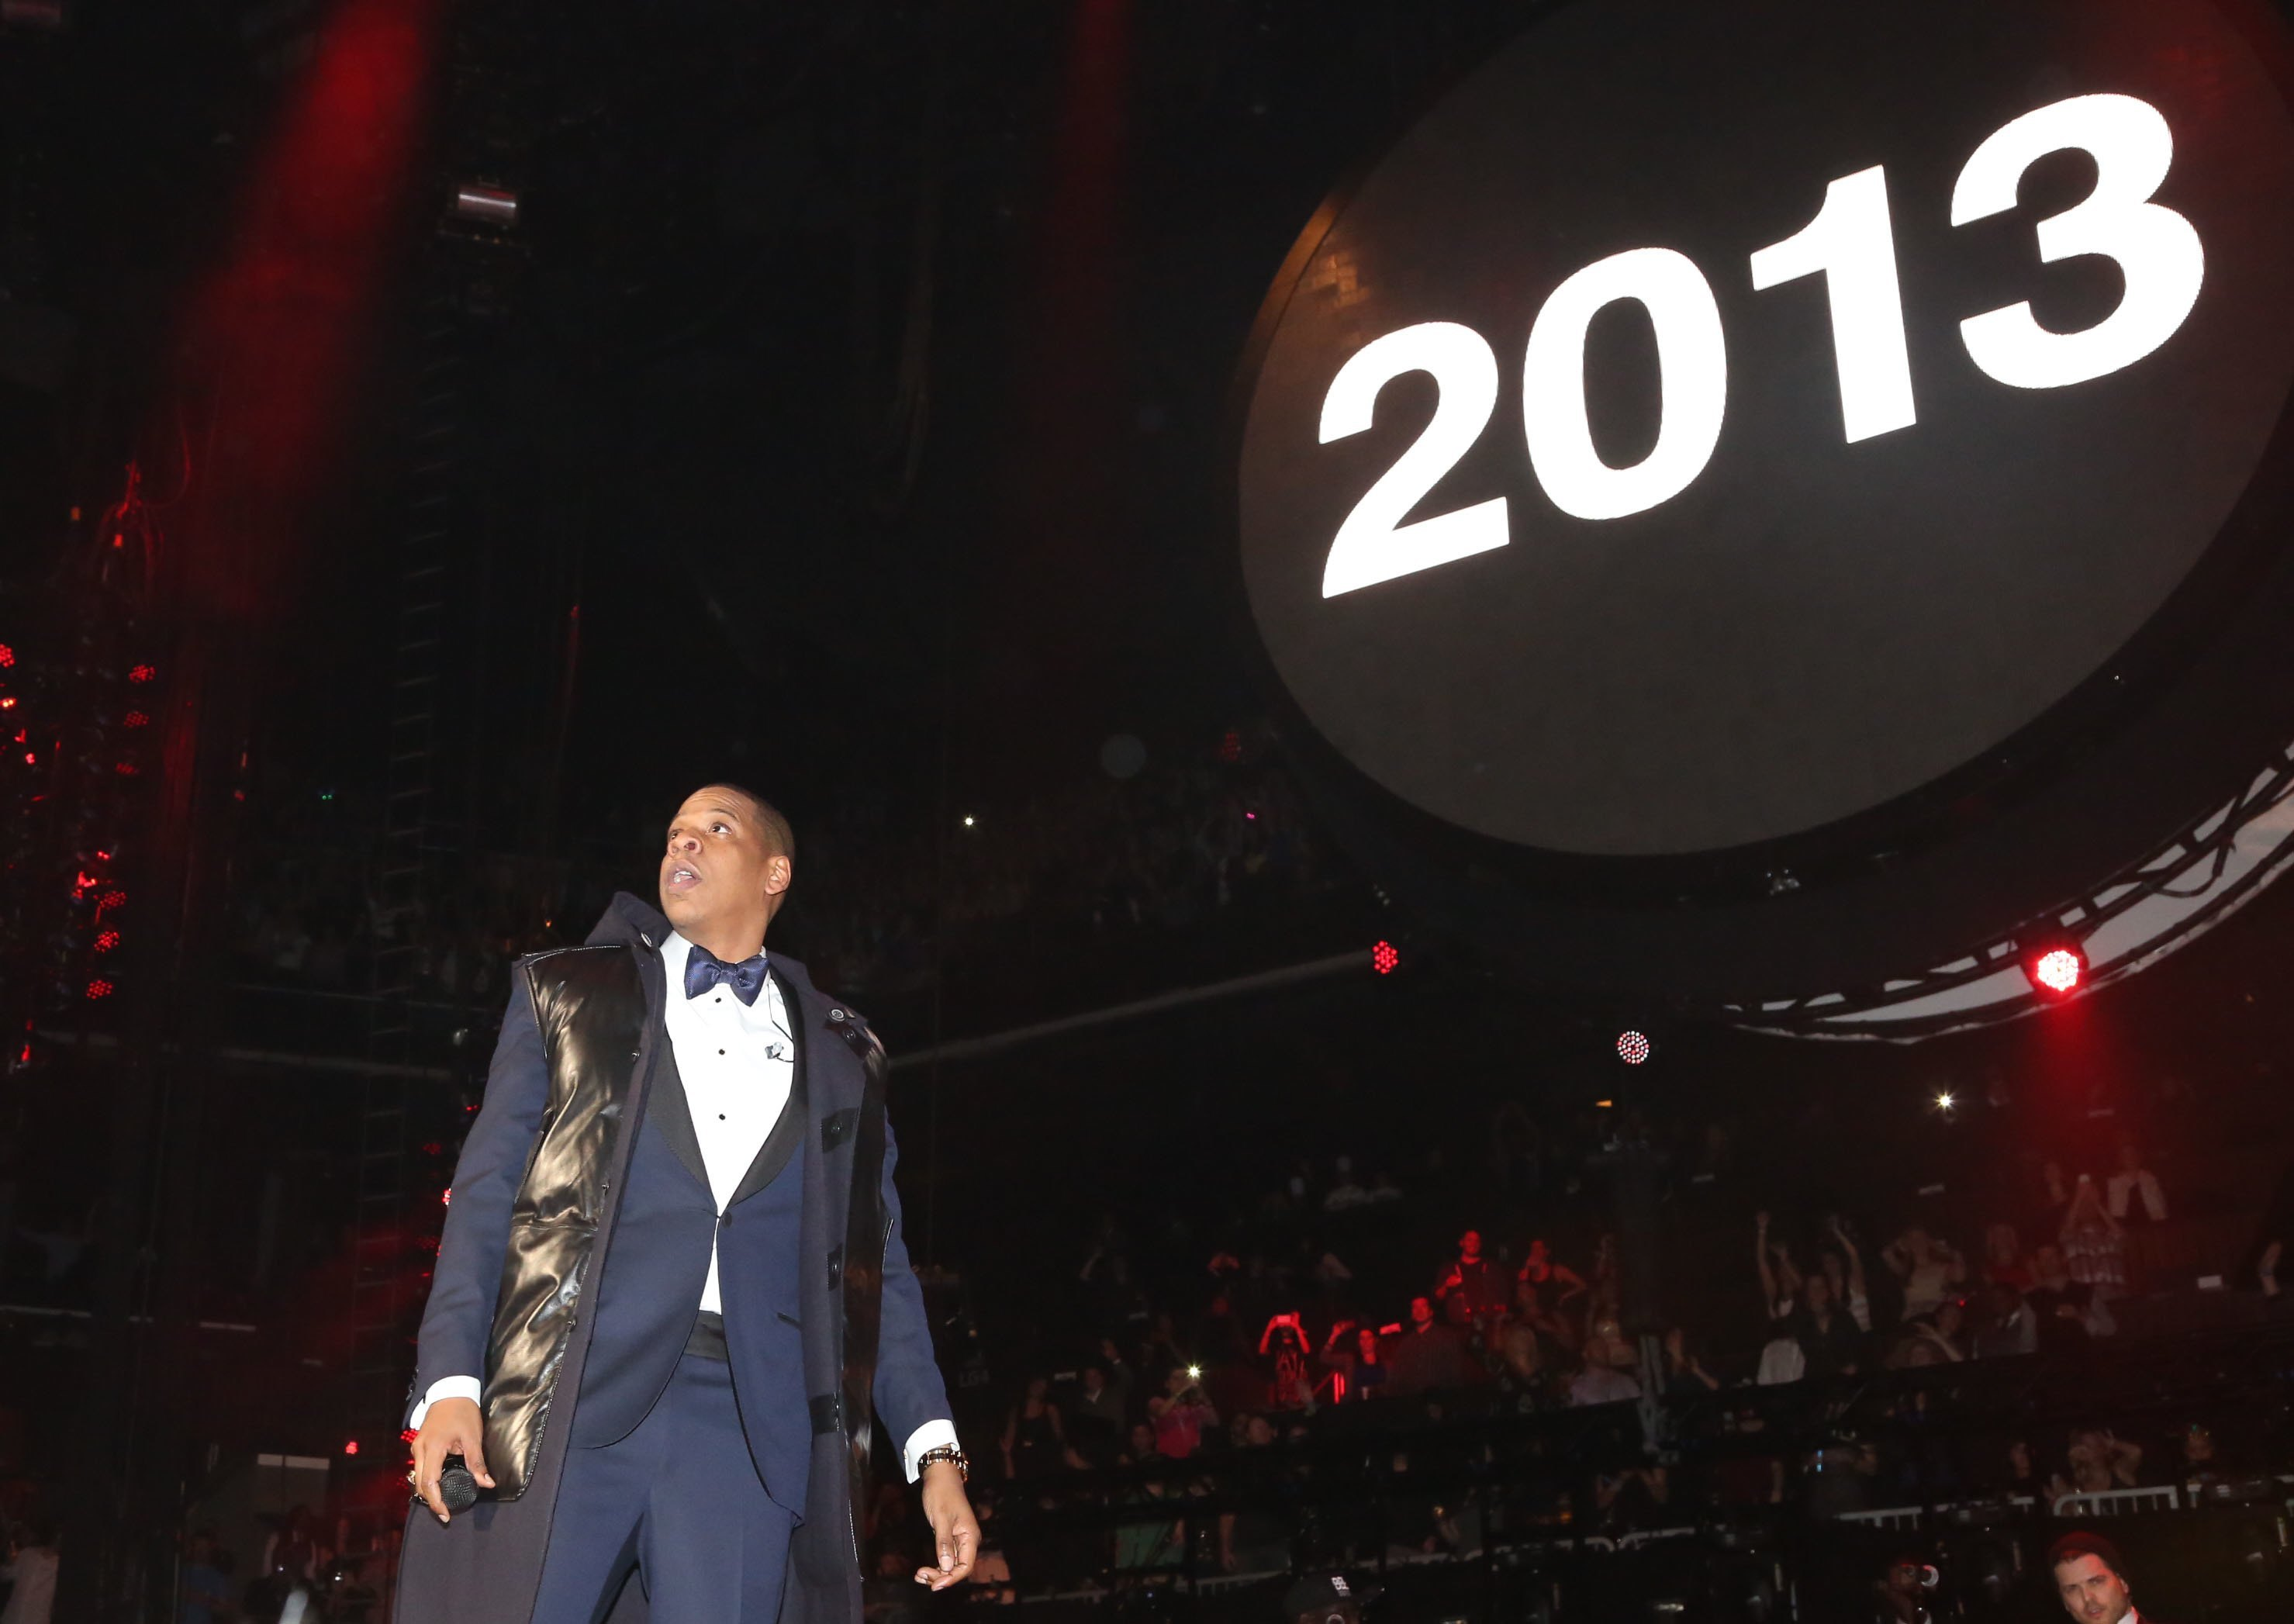 jay z rapper on stage concert performance new york